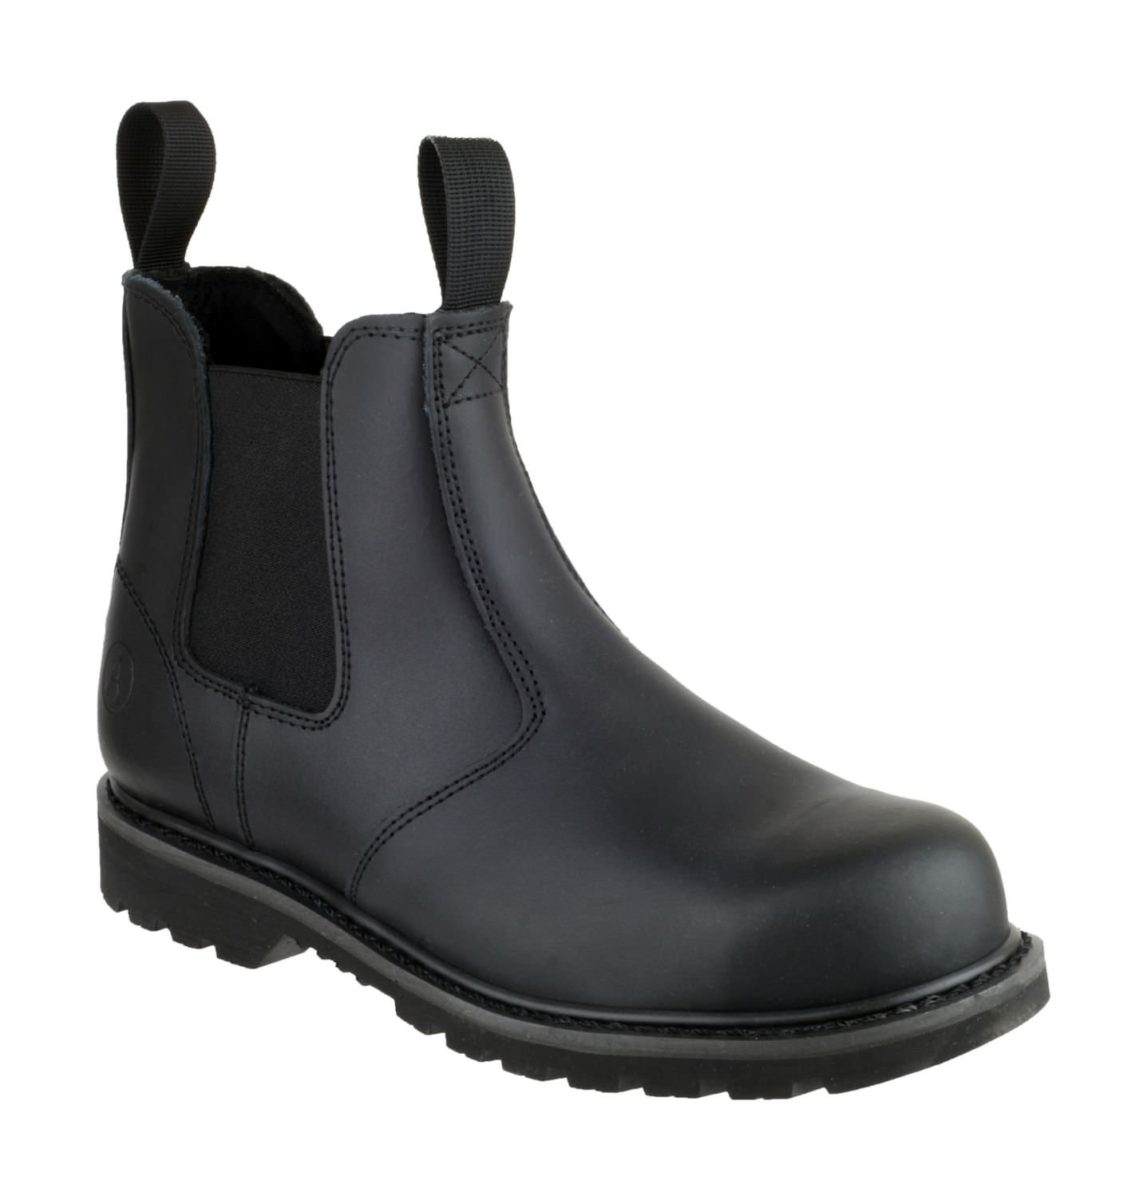 Amblers FS5 Welted Safety Dealer Boot